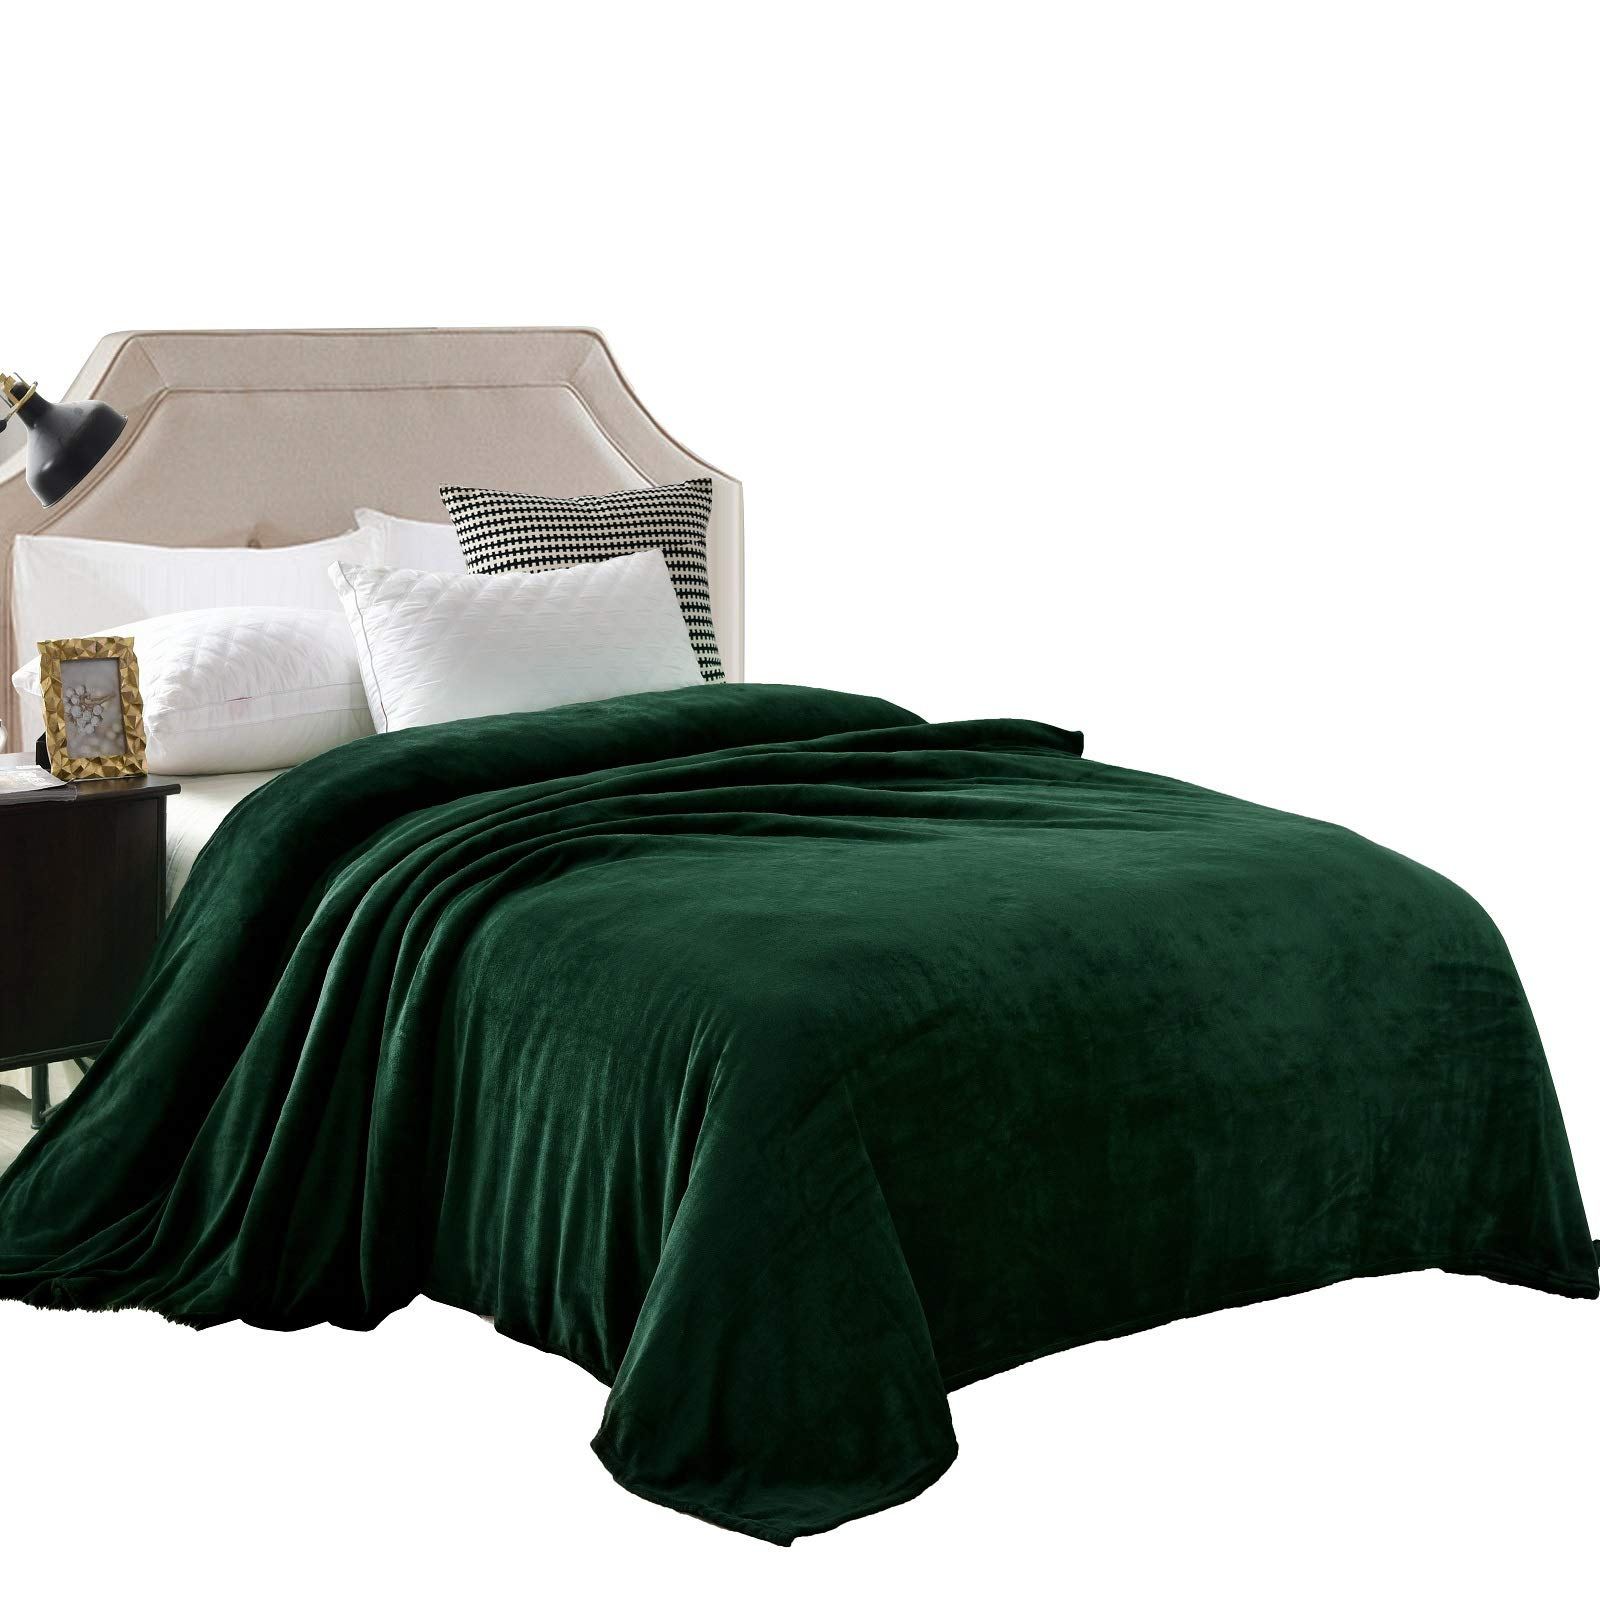 """Exclusivo Mezcla Velvet Flannel Fleece Plush Queen Size Bed Blanket as Bedspread/Coverlet/Bed Cover (90"""" x 90"""", Forest Green) - Soft, Lightweight, Warm and Cozy"""